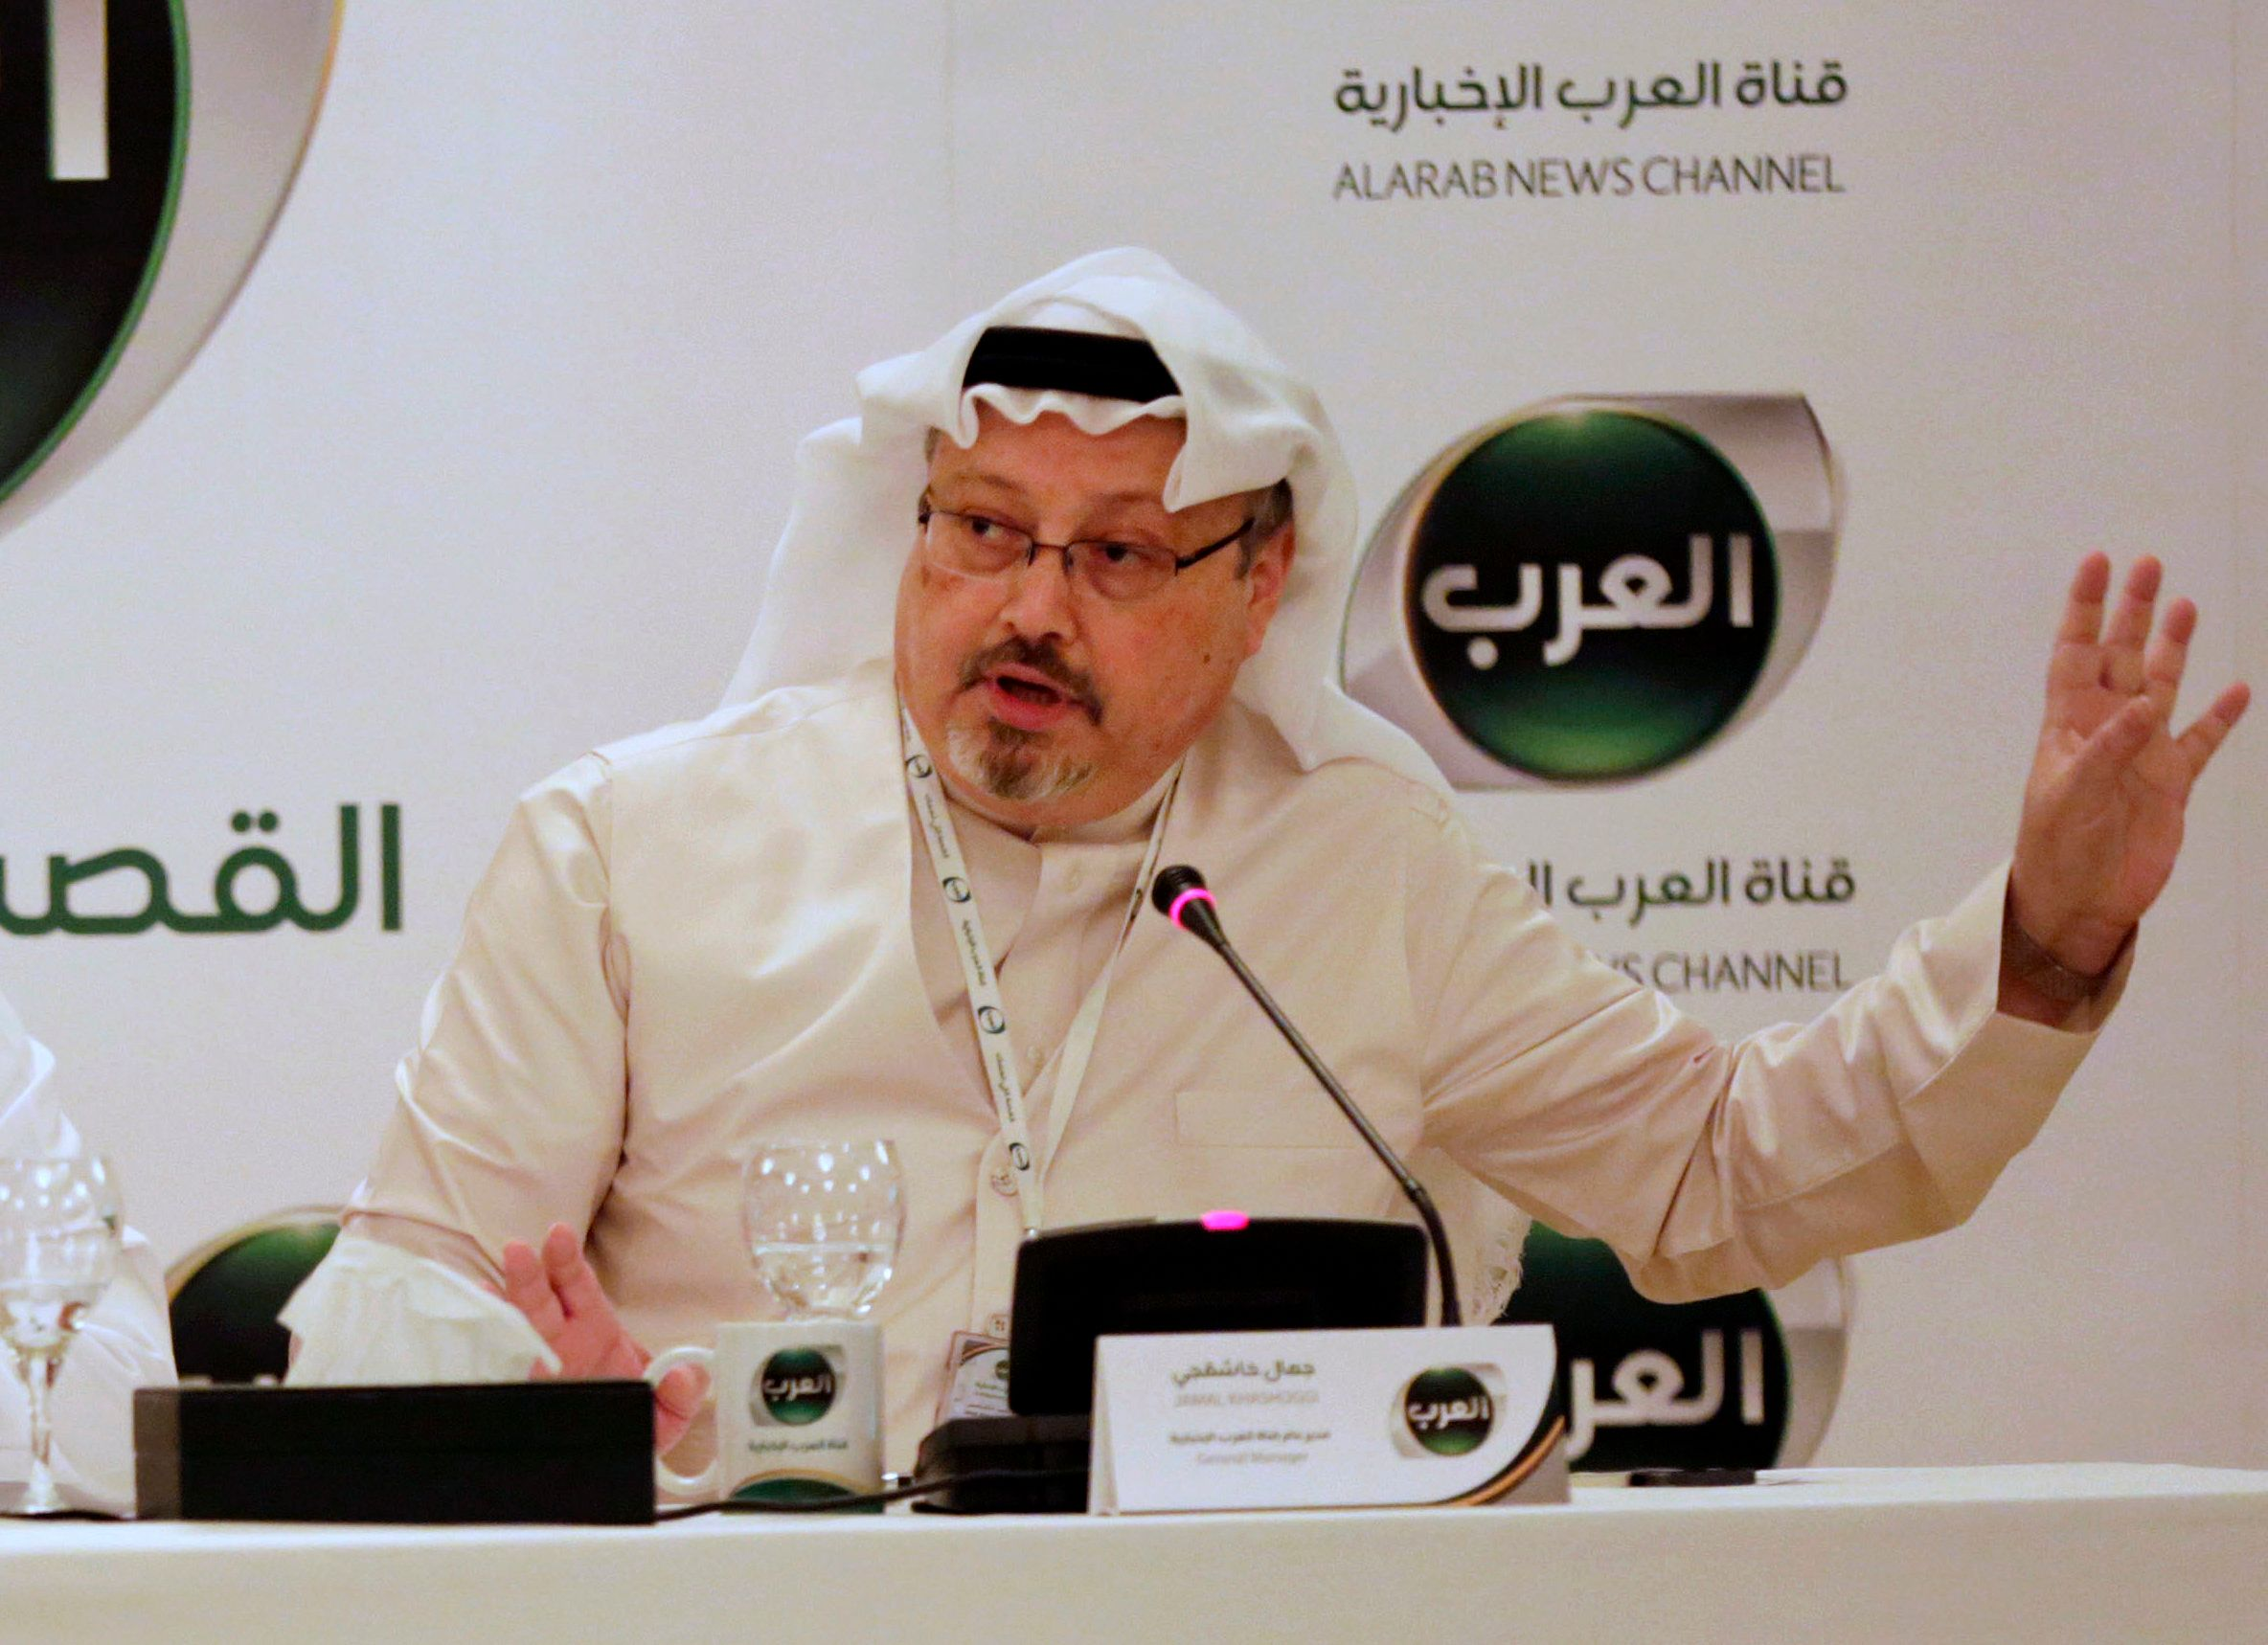 Jamal Khashoggi, then general manager of a new Arabic news channel speaks during a press conference, in Manama, Bahrain, Dec. 15, 2014  (Photo: Hasan Jamali/AP)